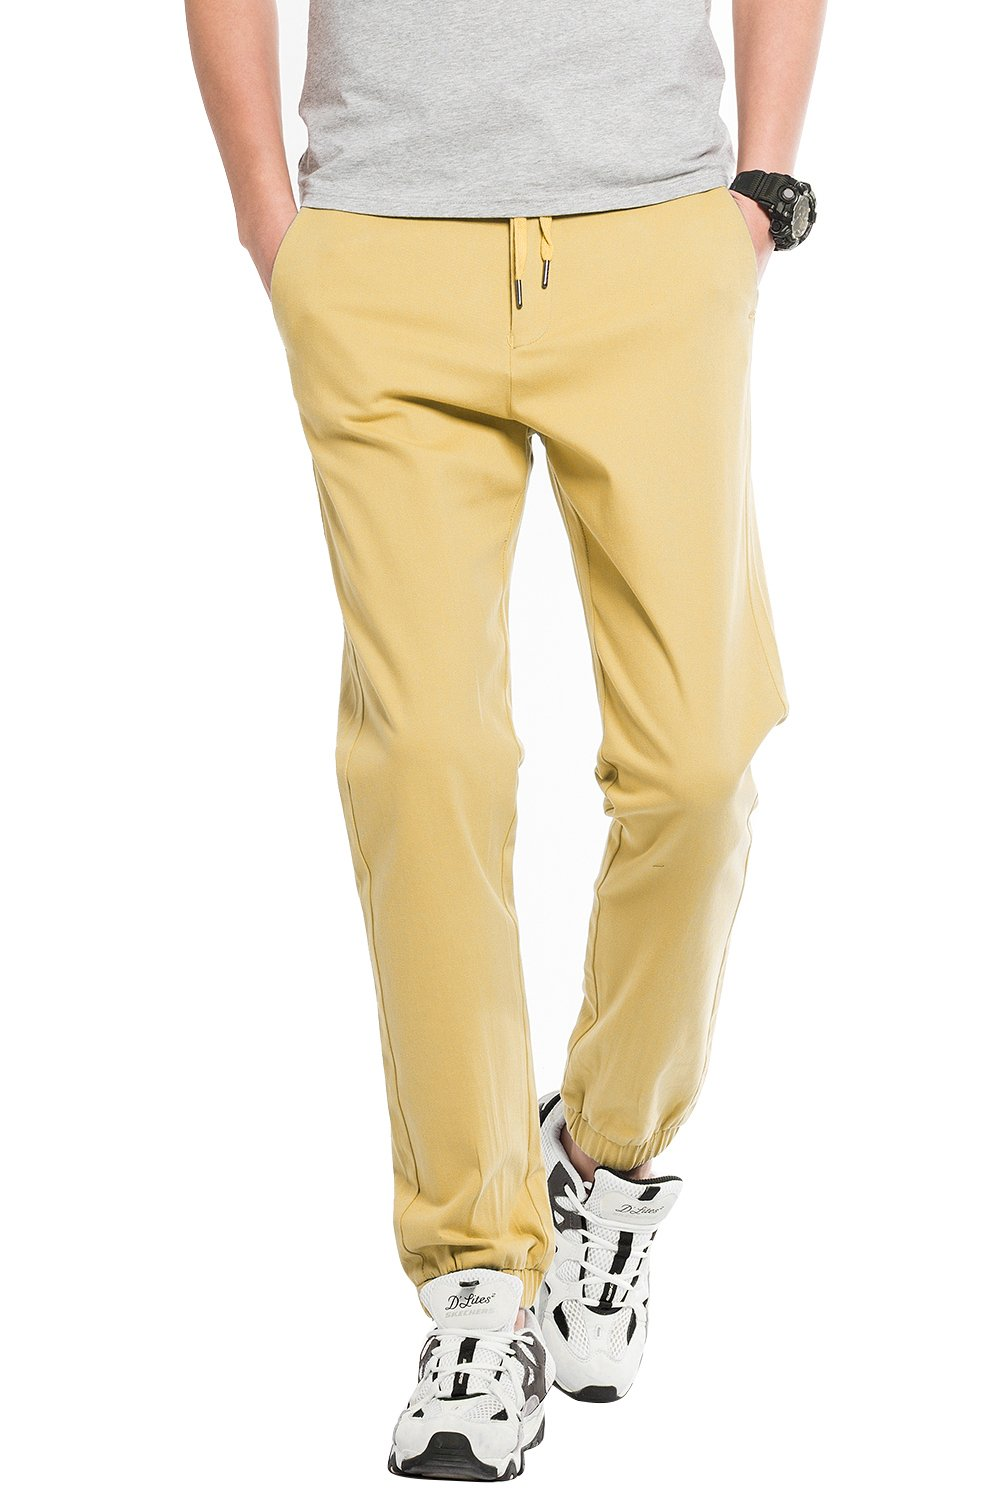 Basic Comfy Tapered Jogger Pants for Mens Lightweight Sports Jogging Slack for Youth Junior Yellow US Size M